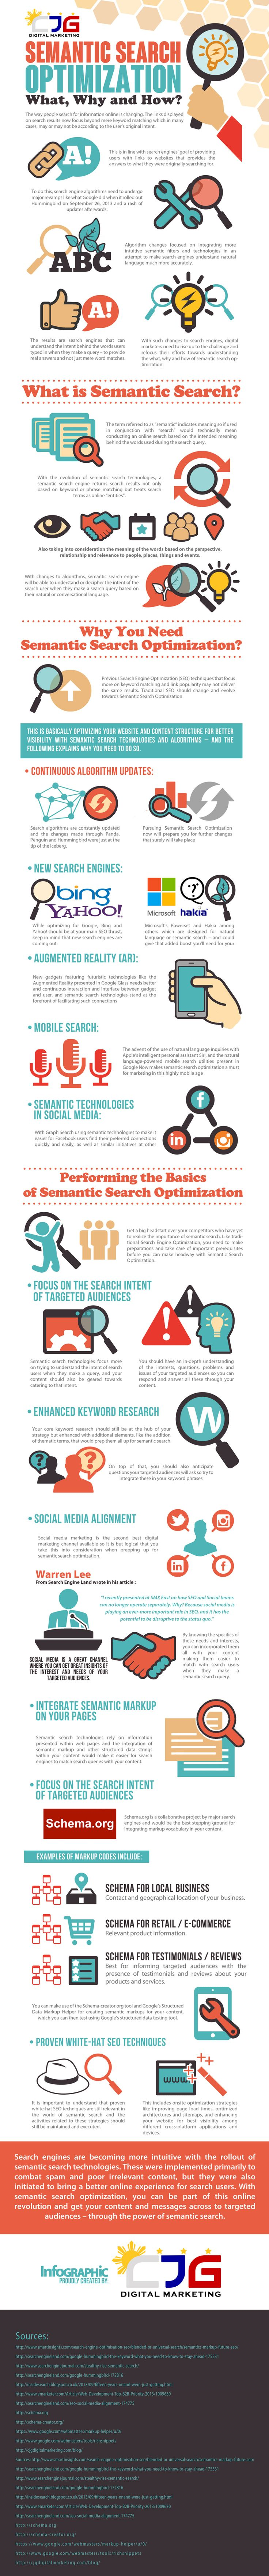 #SemanticSearch Optimization – What, Why and How (#Infographic). #semanticseo